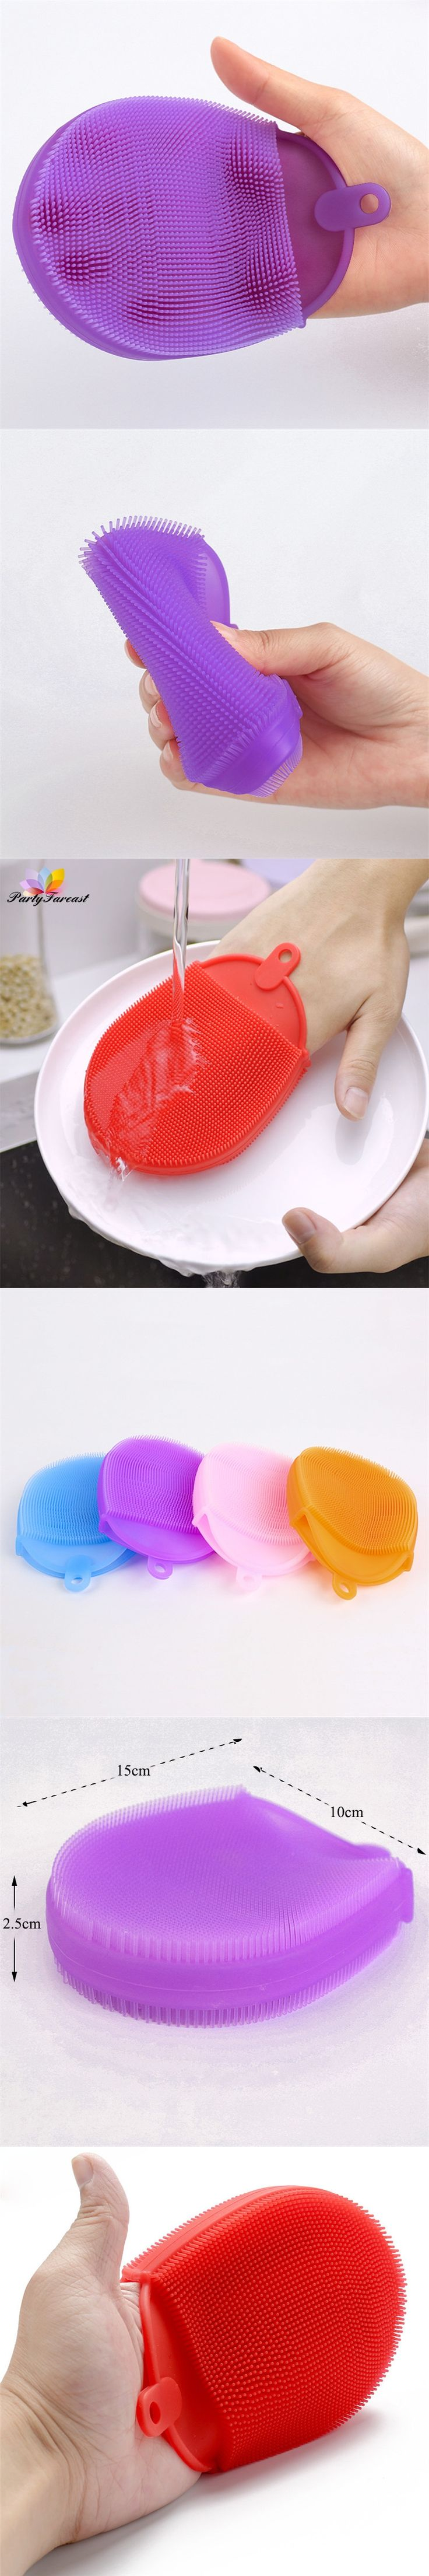 PF Random Color Cleaning Brush for Dishes Bowls Silica Gel Kitchen Tools Repeatedly Used Limpeza Casa Household Cleaning Brushes